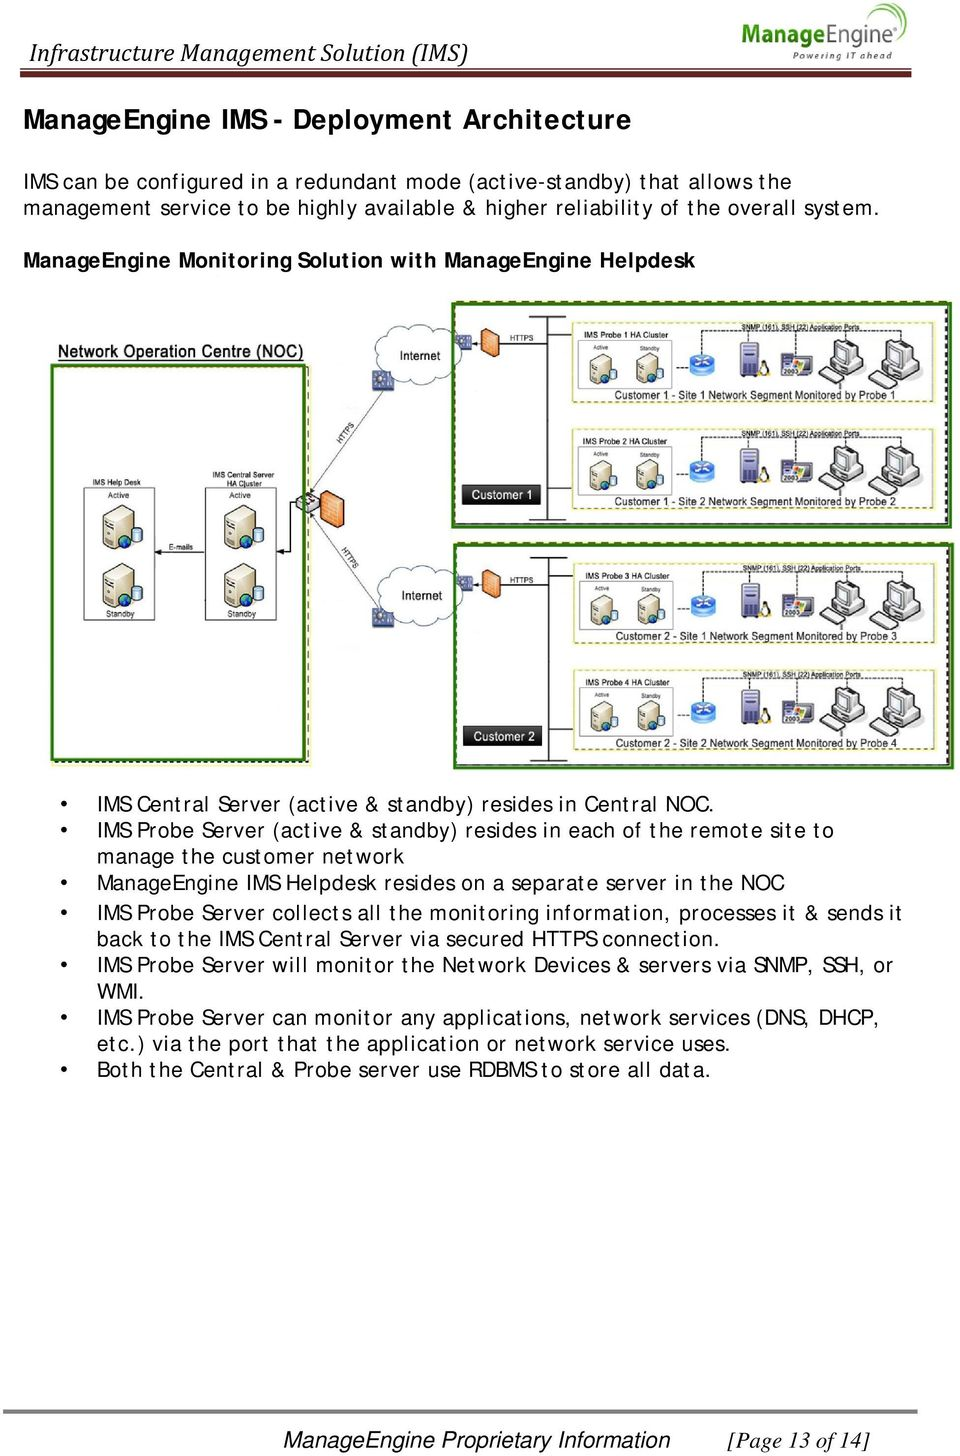 IMS Probe Server (active & standby) resides in each of the remote site to manage the customer network ManageEngine IMS Helpdesk resides on a separate server in the NOC IMS Probe Server collects all